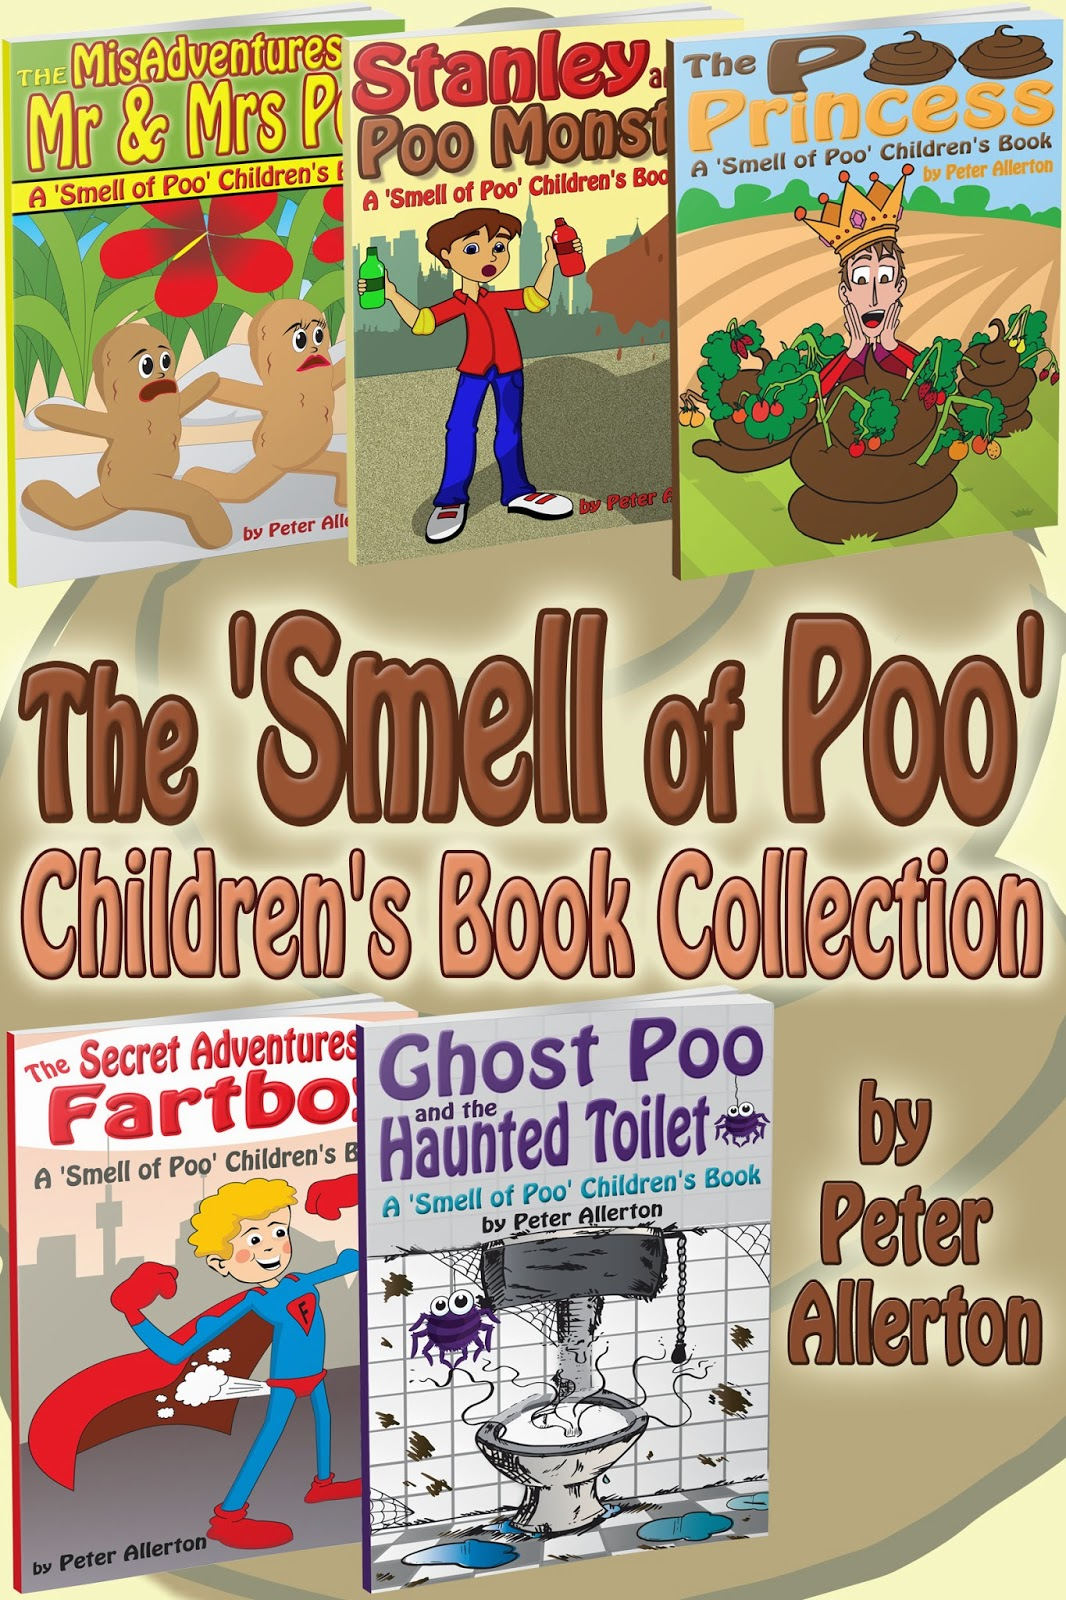 funny children's poo book allerton